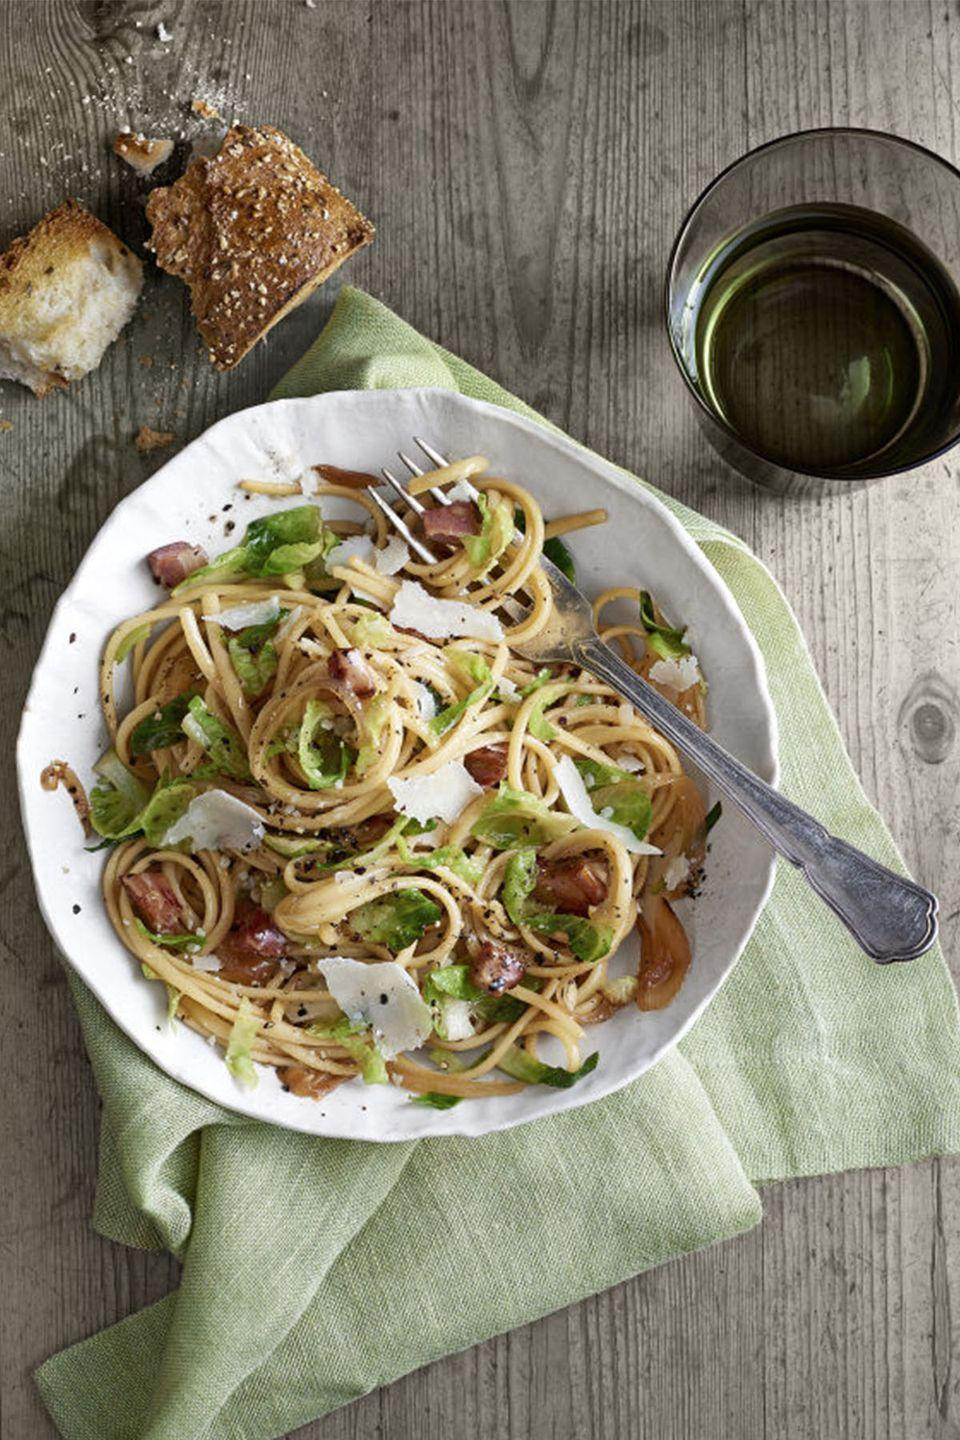 """<p>Make like Lady and the Tramp over a big bowl of linguini.</p><p><strong><a href=""""https://www.countryliving.com/food-drinks/recipes/a6337/pancetta-brussels-sprouts-linguini-recipe-clx0215/"""" rel=""""nofollow noopener"""" target=""""_blank"""" data-ylk=""""slk:Get the recipe"""" class=""""link rapid-noclick-resp"""">Get the recipe</a>.</strong> </p><p><a class=""""link rapid-noclick-resp"""" href=""""https://www.amazon.com/Victoria-Skillet-Seasoned-Flaxseed-Certified/dp/B01726HD72/?tag=syn-yahoo-20&ascsubtag=%5Bartid%7C10050.g.1115%5Bsrc%7Cyahoo-us"""" rel=""""nofollow noopener"""" target=""""_blank"""" data-ylk=""""slk:SHOP SKILLETS"""">SHOP SKILLETS</a></p>"""